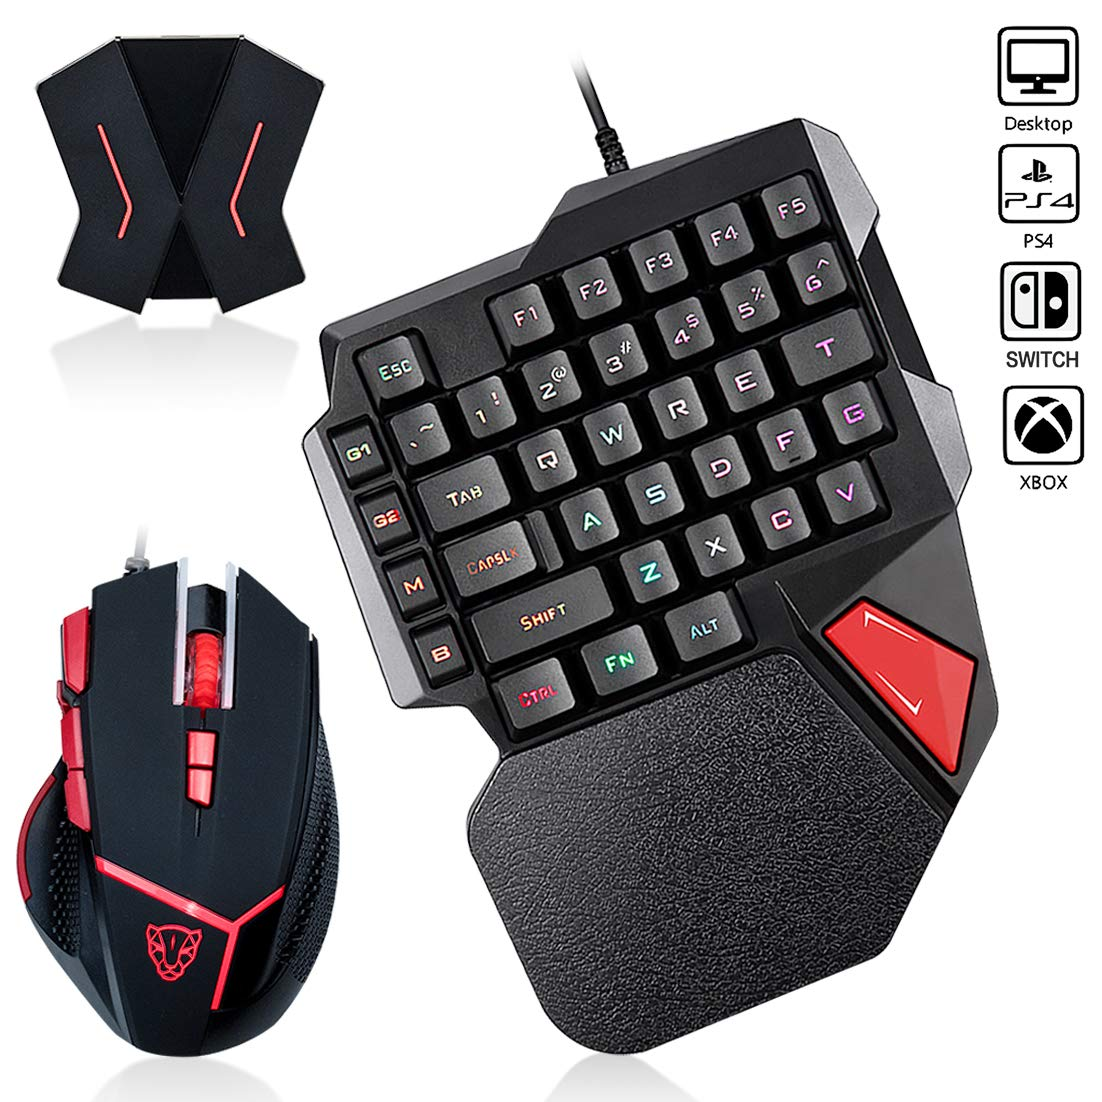 Zjfksdyx C91 Pro Backlit Gaming Keyboard And Mouse With Video Game For Ps4 Xbox One Switch Ps3 Pc Gamingdevicesdepot Com